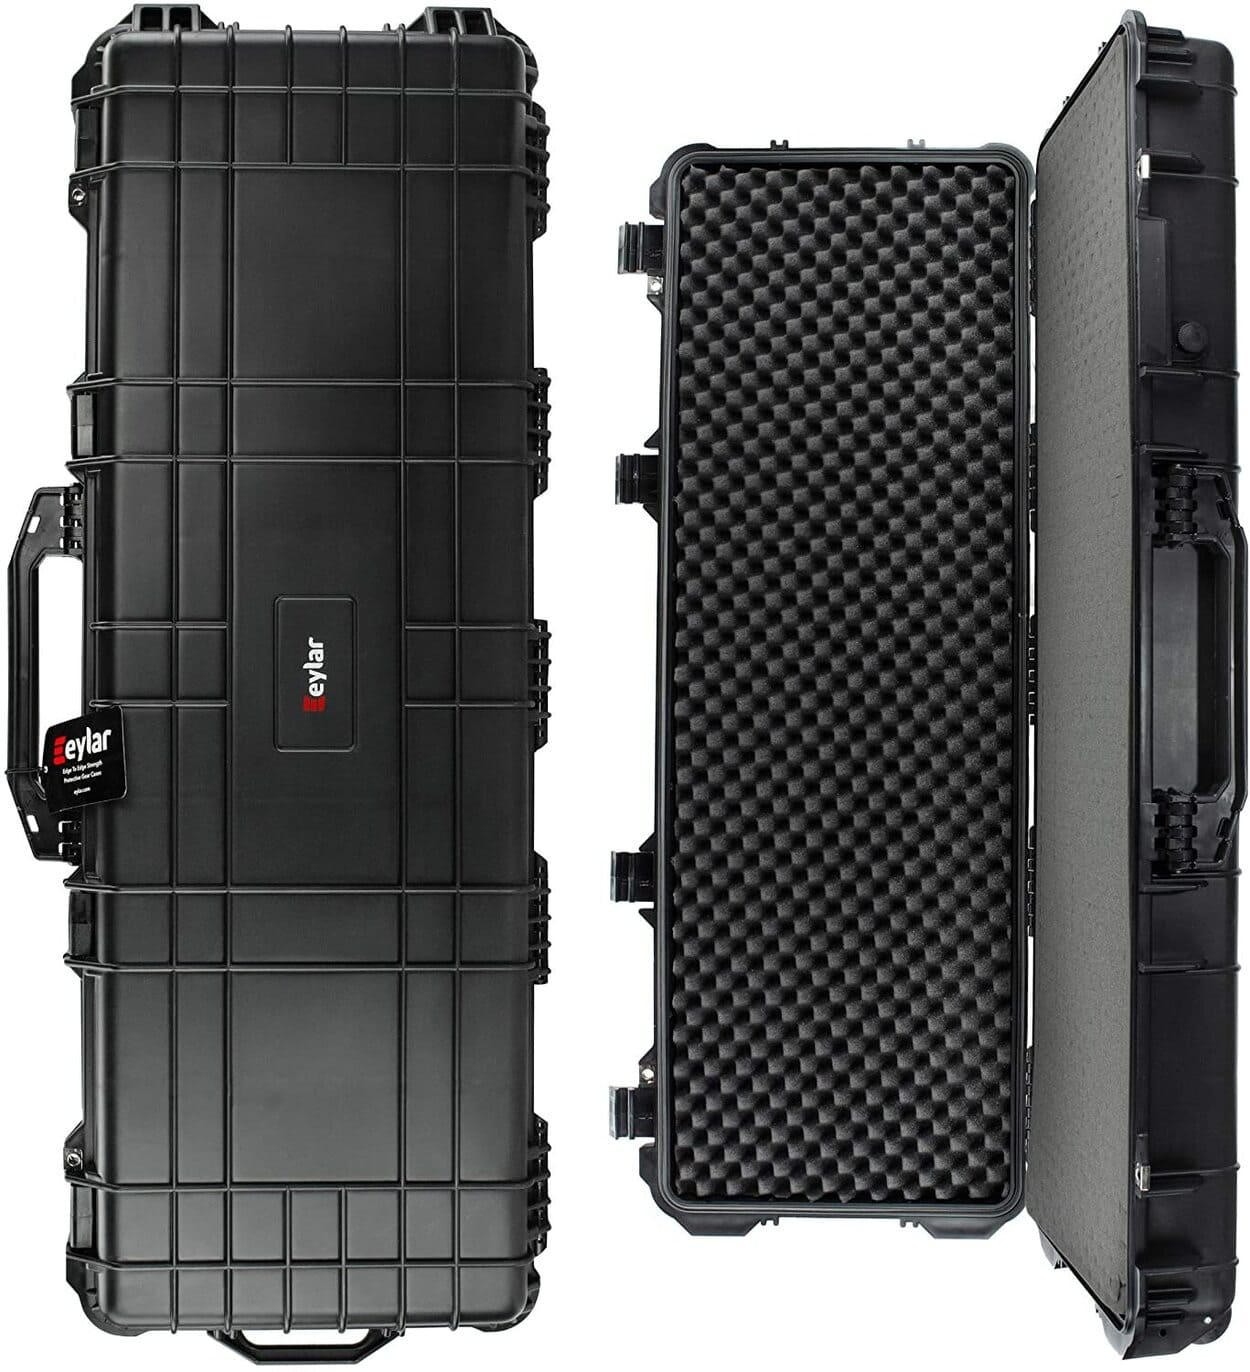 Protective Roller Tactical Rifle Hard Case with Foam, Mil-Spec Waterproof & Crushproof